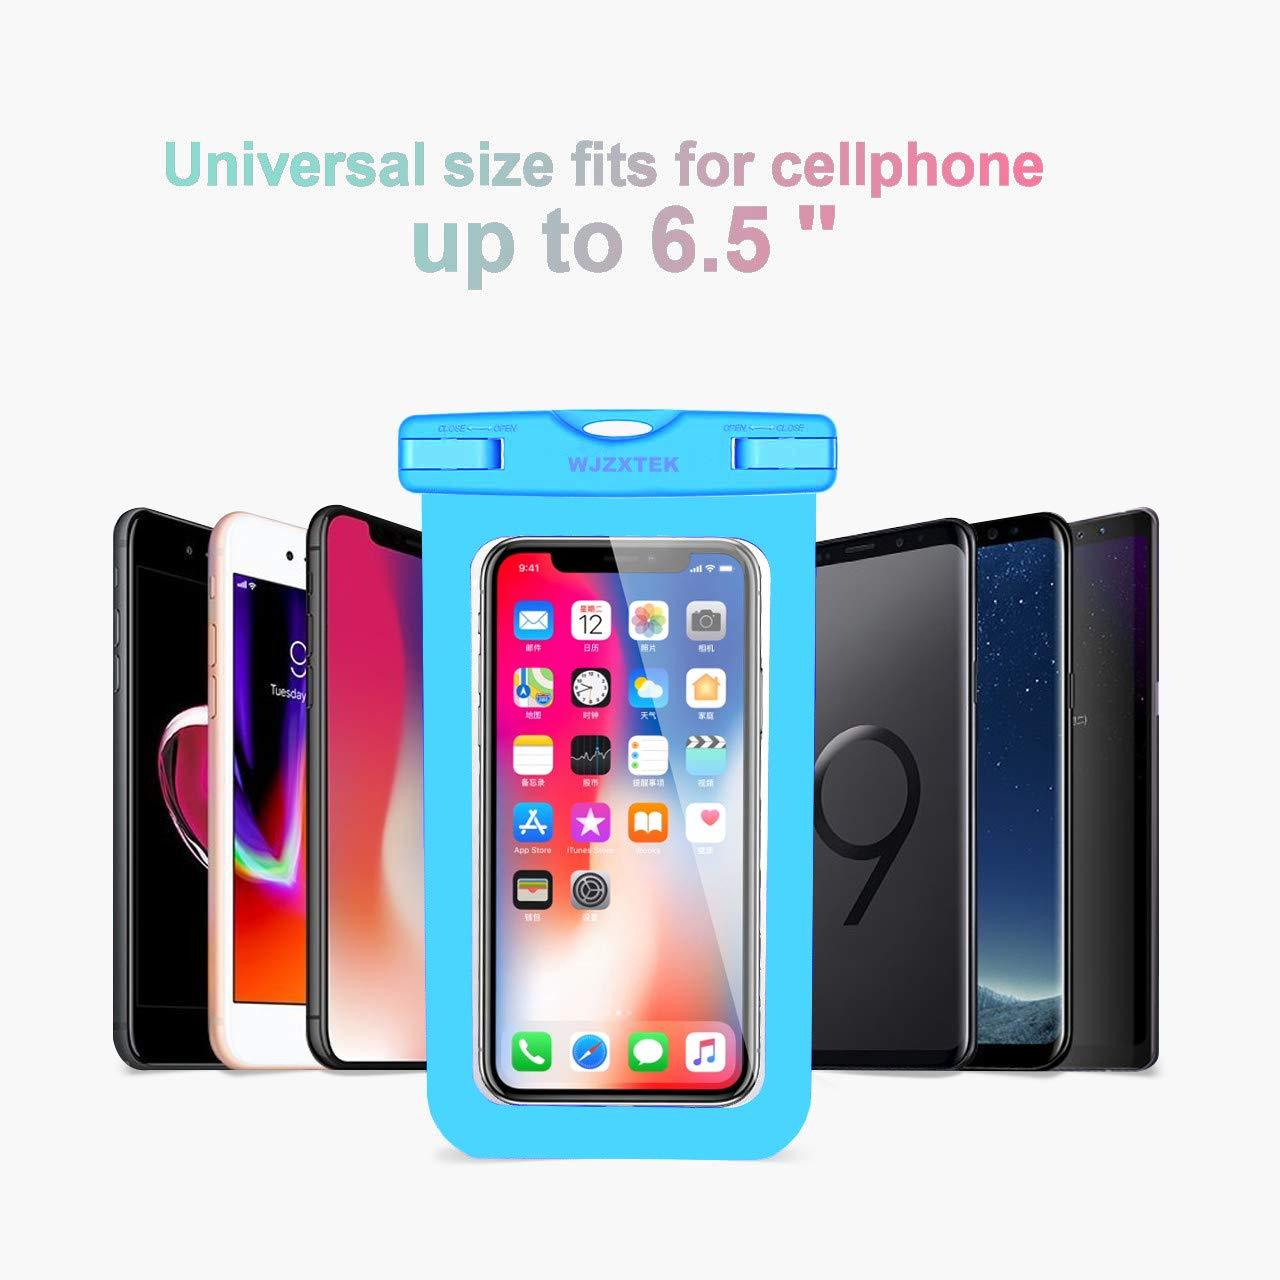 WJZXTEK Universal Waterproof Case,IPX8 Waterproof Phone Pouch Underwater Dry Bag,Compatible iPhone Xs Max/Xr/X/8/8plus/7/7plus Galaxy s9/s8 Note 9/8 Google Pixel up to 6.5\